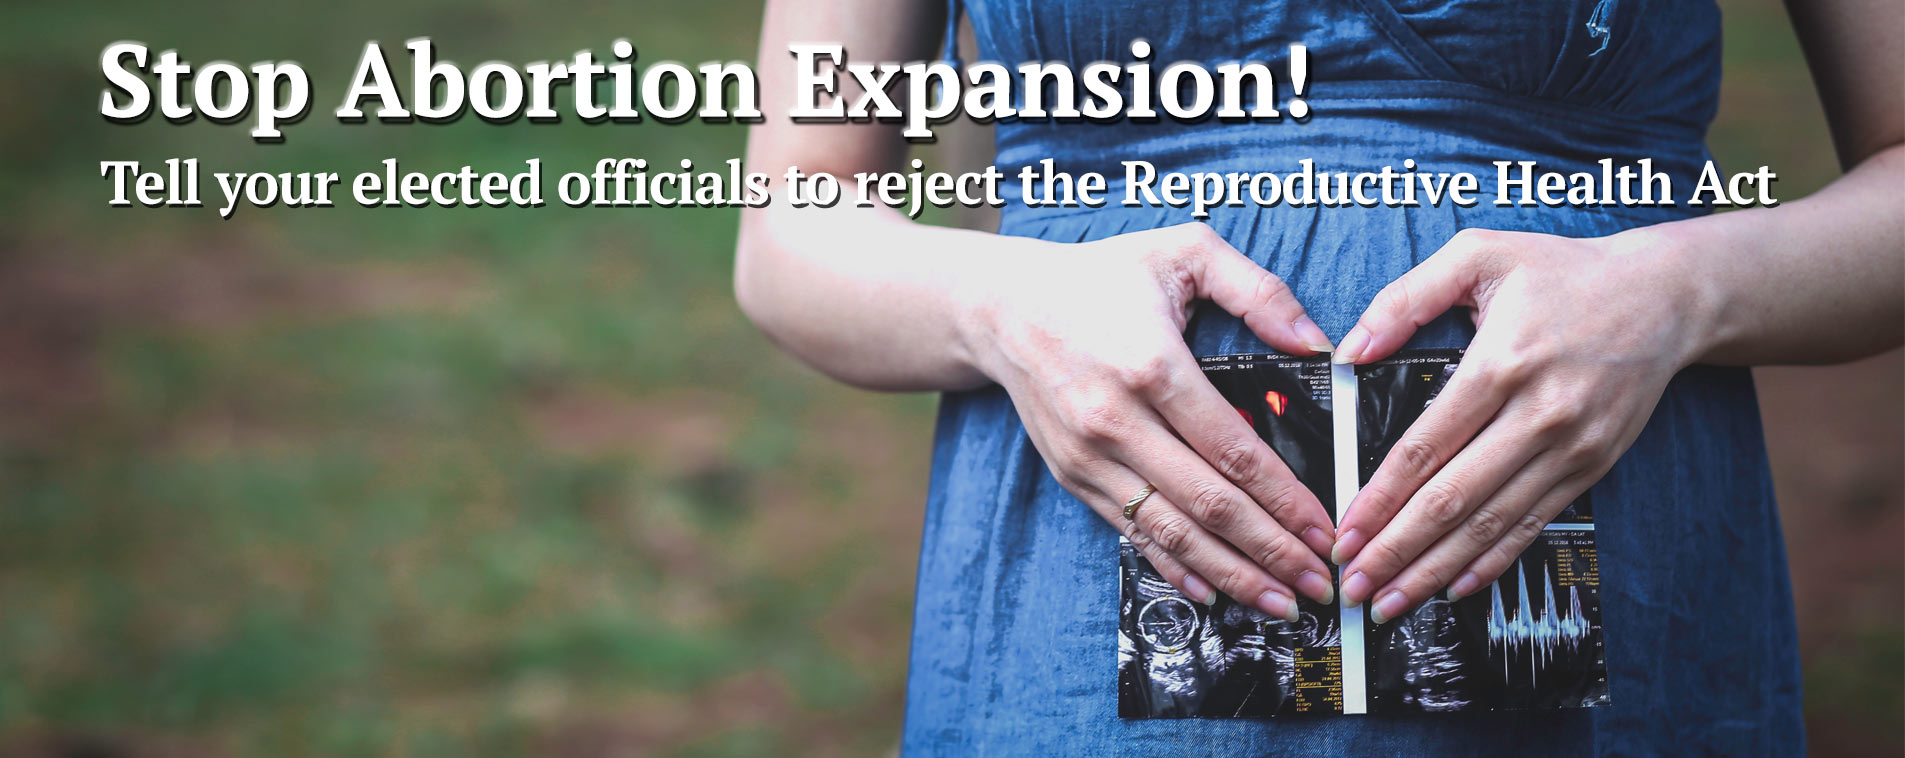 Stop Abortion Expansion